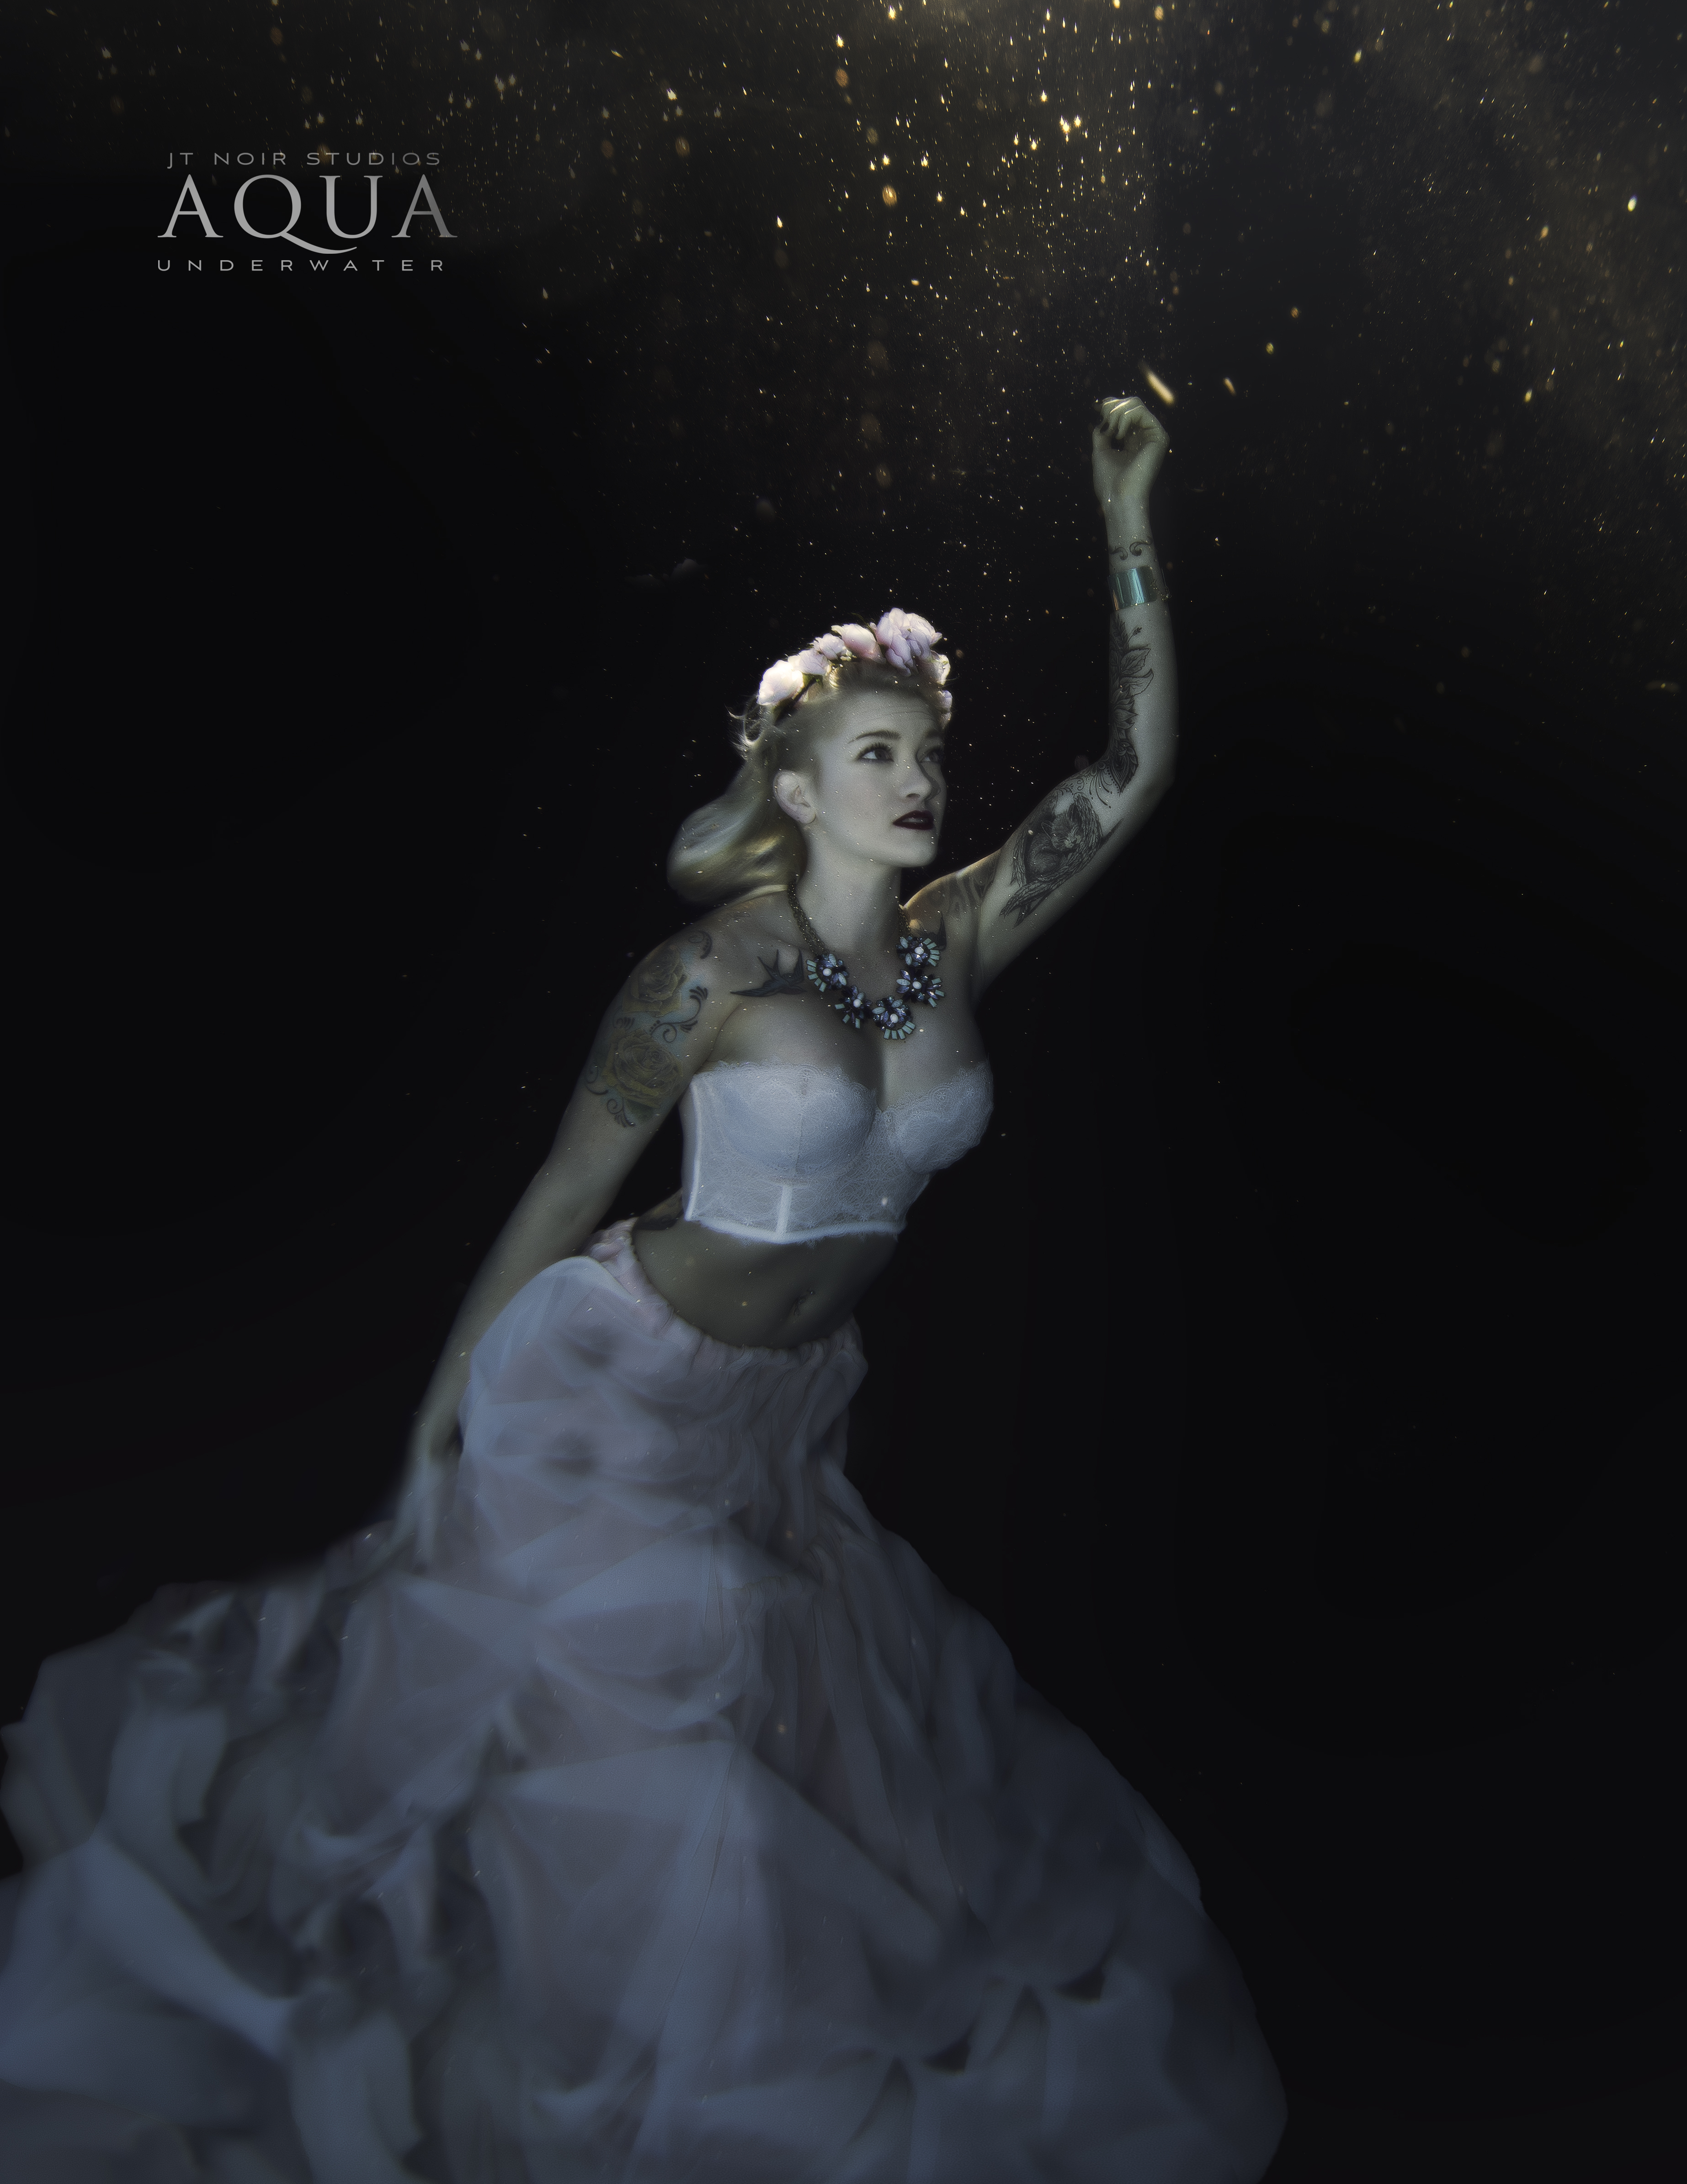 A stunning advertising photo of a woman with flowing white dress underwater